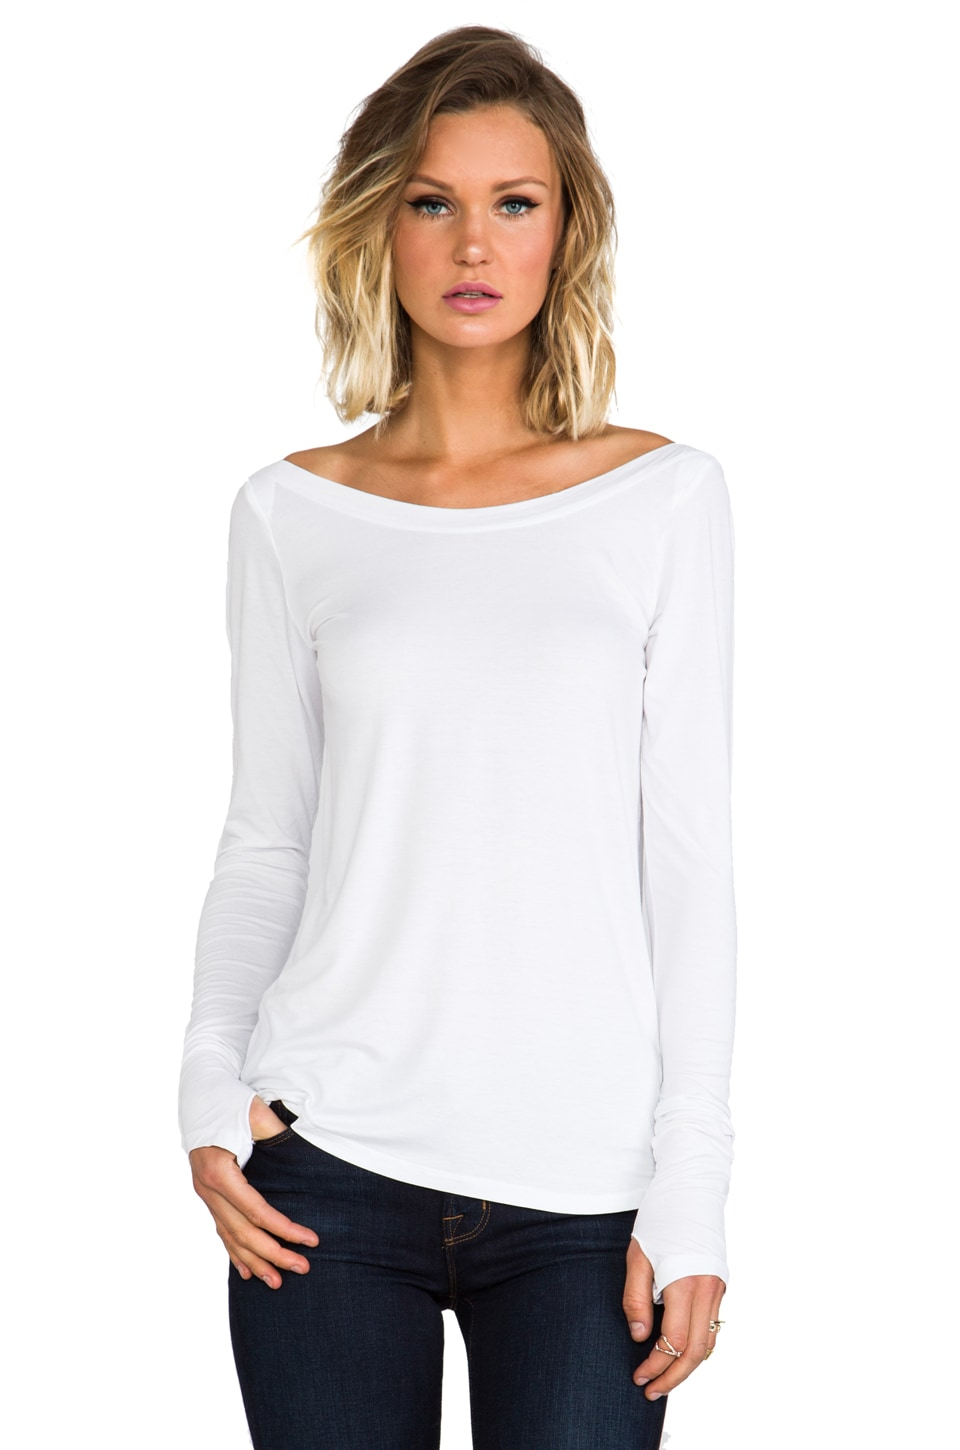 Feel the Piece Ballet Top in White